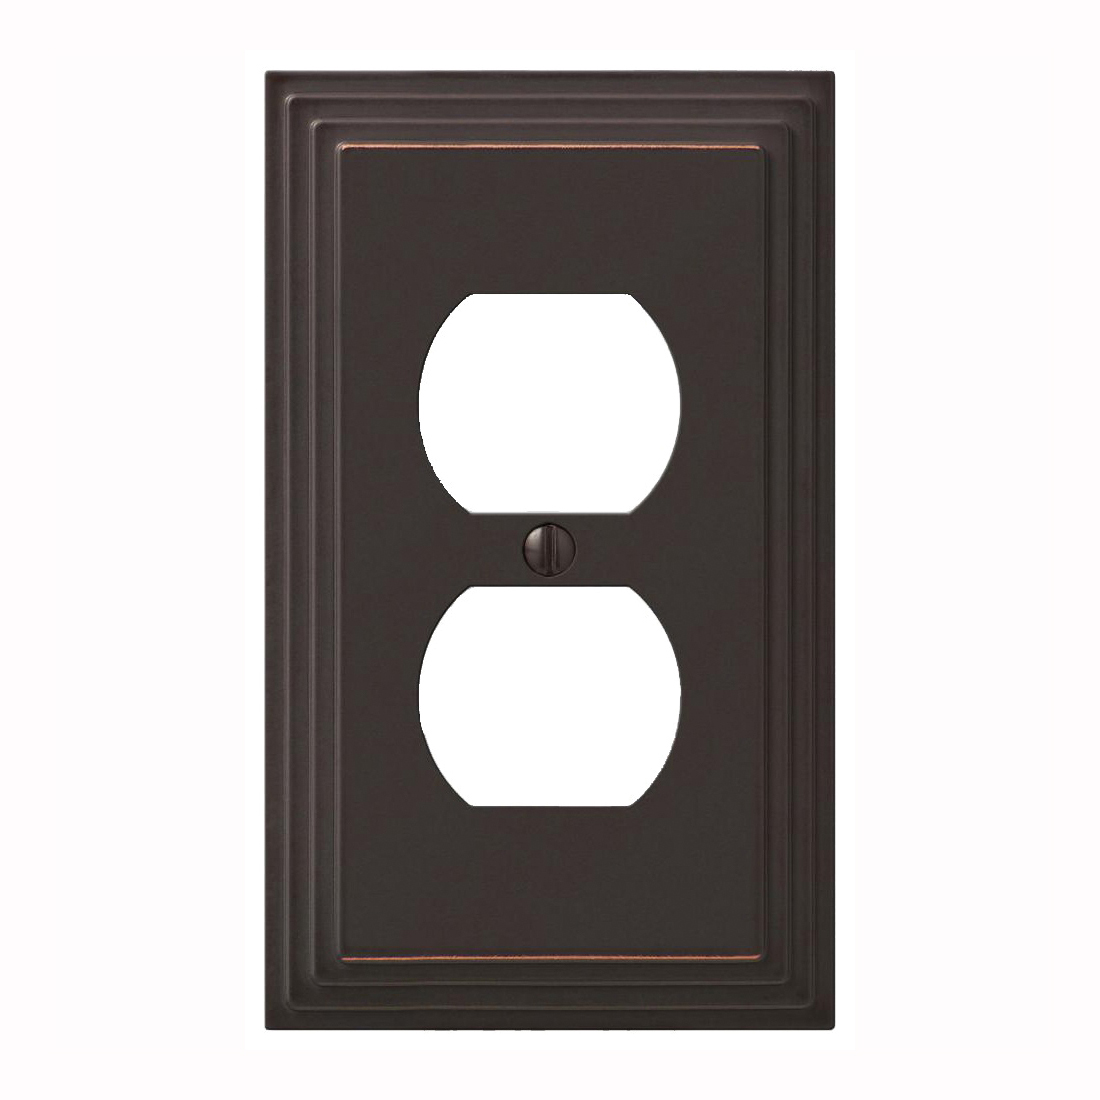 Picture of Amerelle 84DVB Duplex Receptacle Wallplate, 4-5/16 in L, 2-15/16 in W, 1-Gang, Metal, Aged Bronze